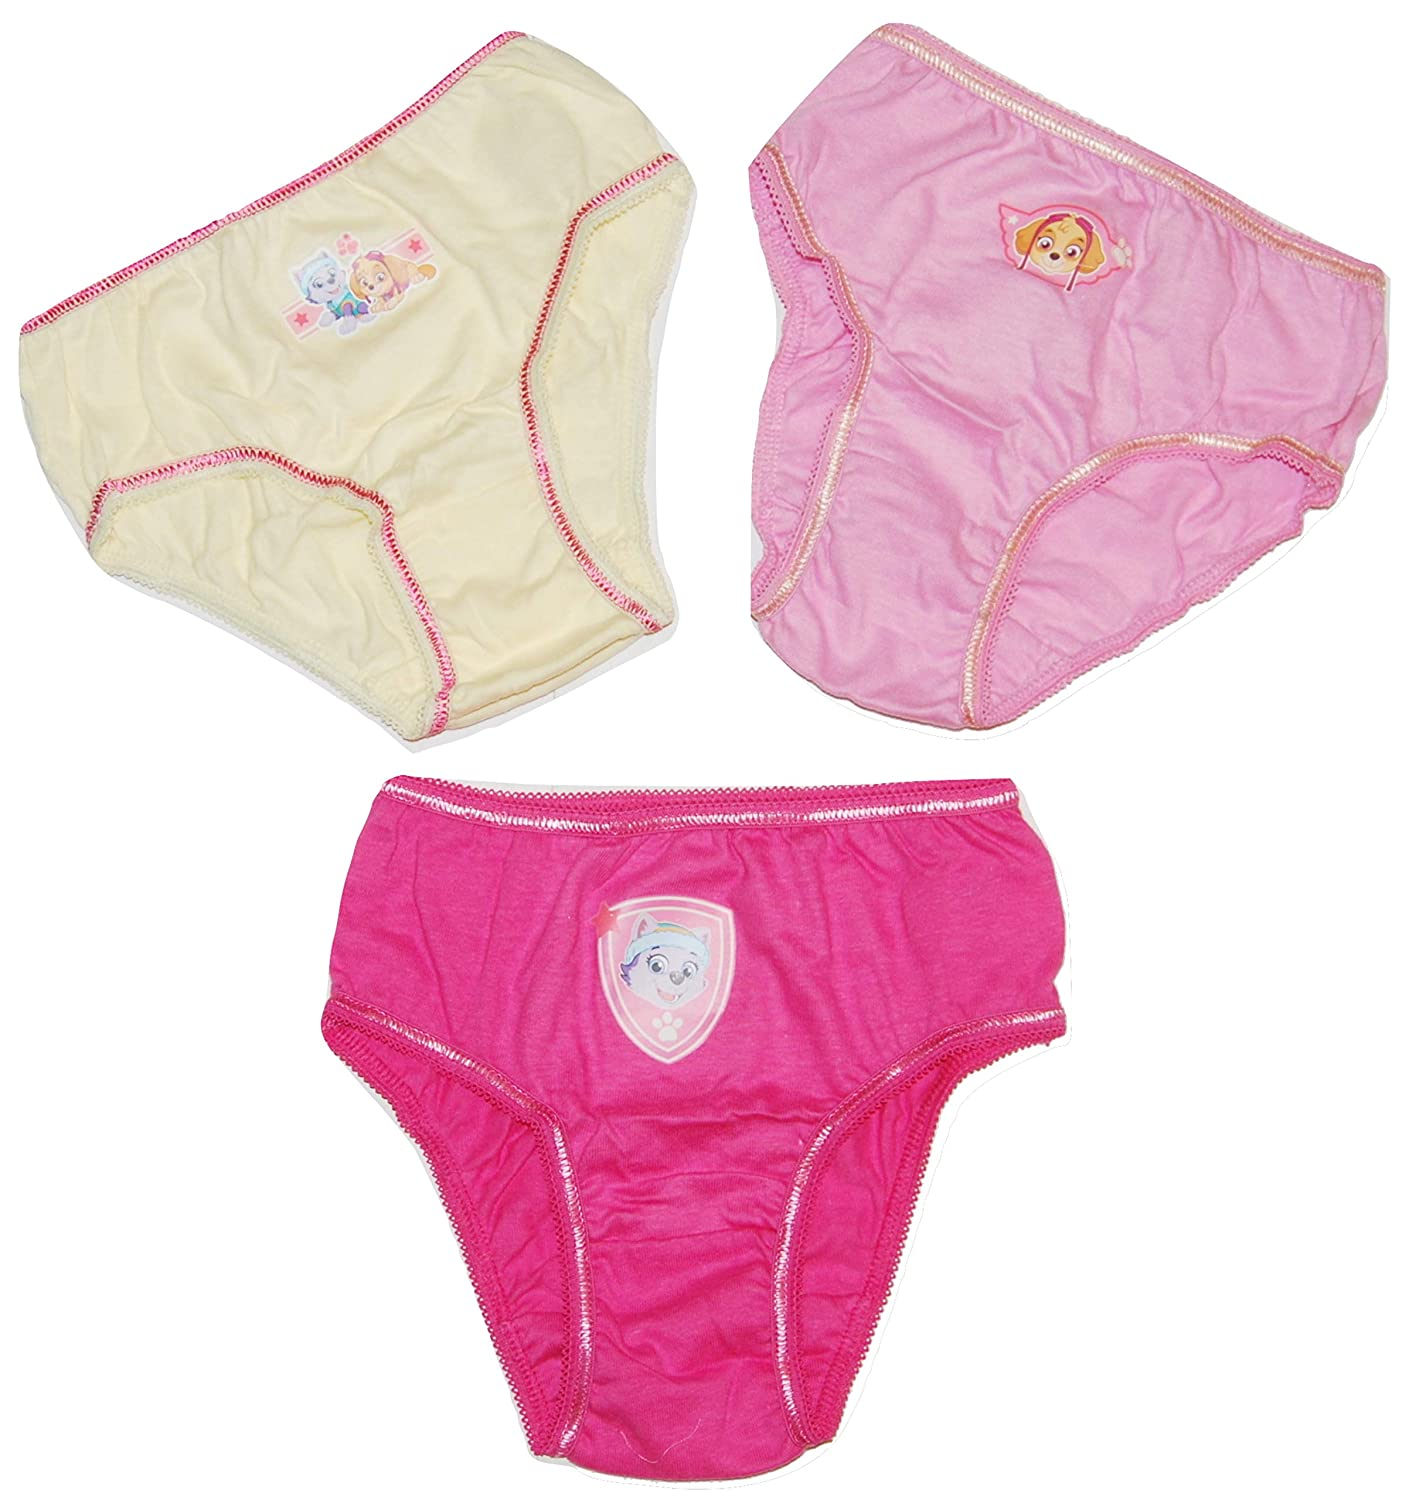 Girls Paw Patrol Pants Knickers 3 Pack